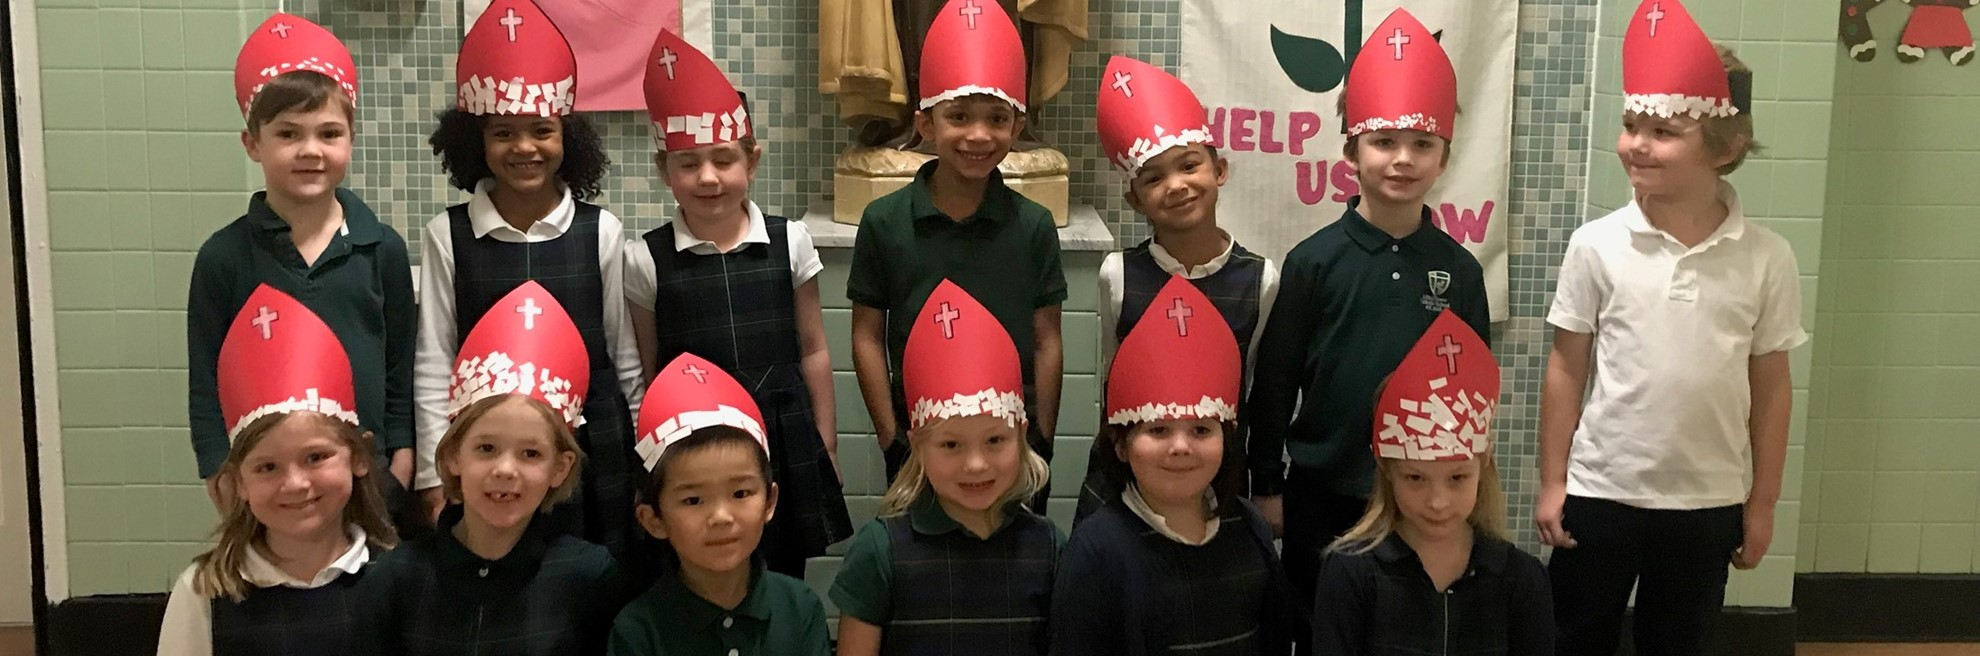 Kids dressed for St. Nicholas Day